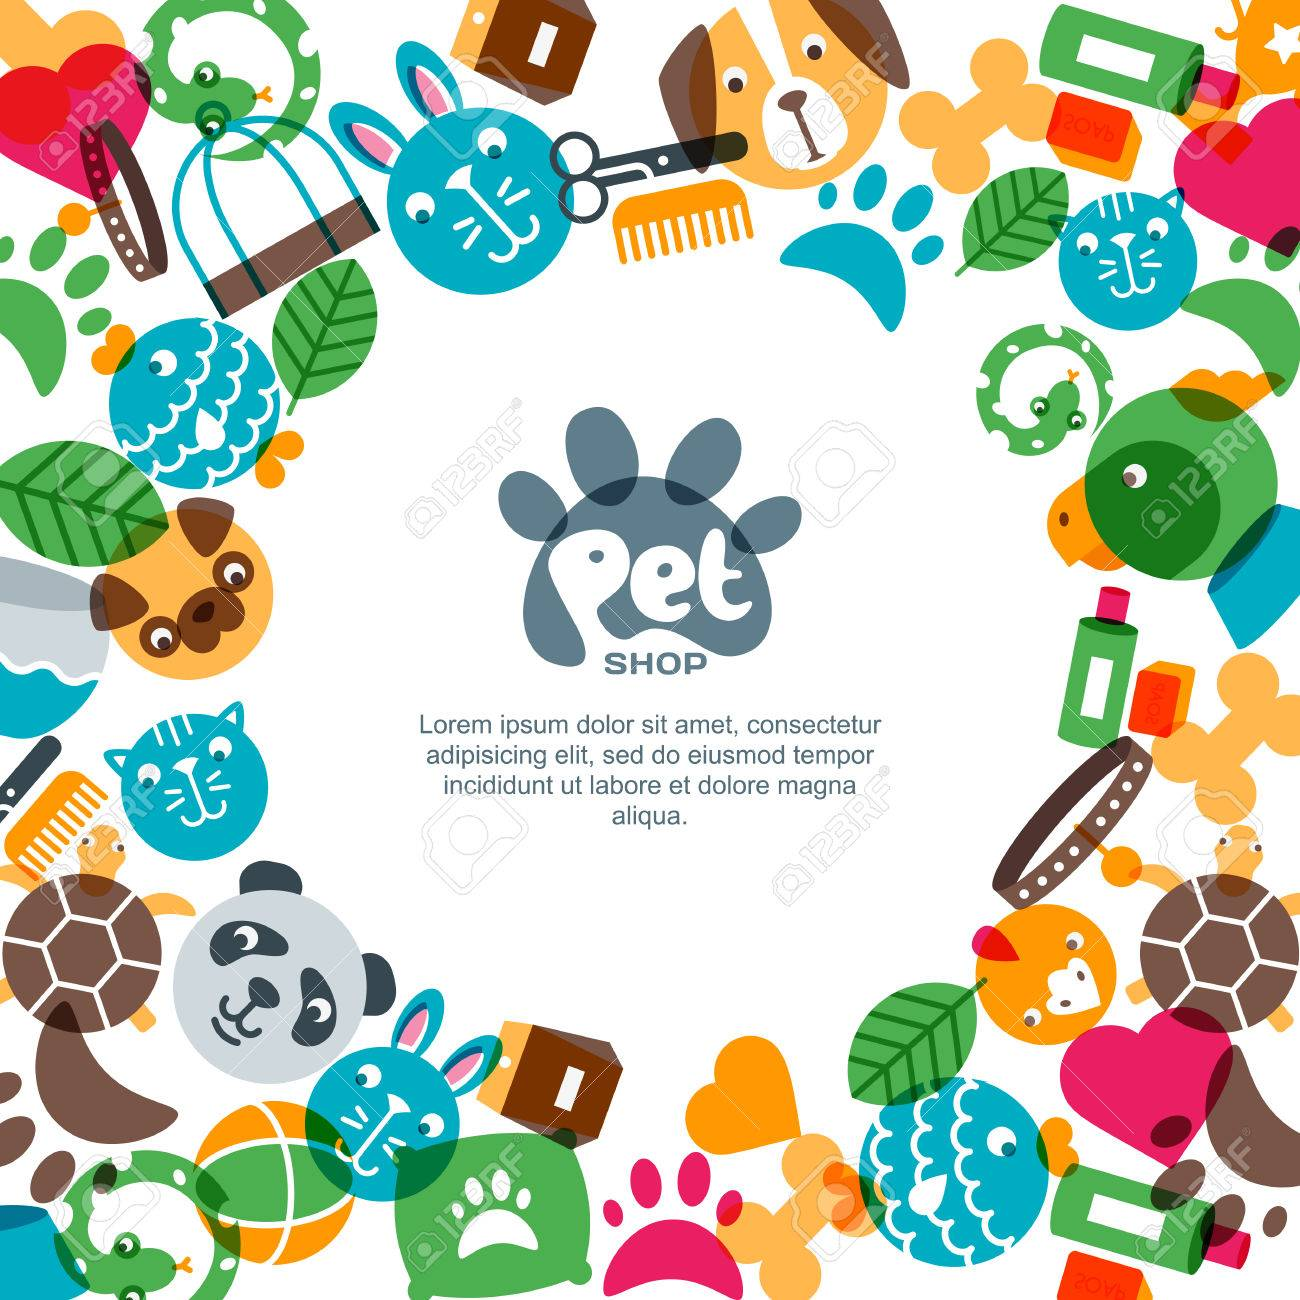 pet shop zoo or veterinary square banner poster or flyer design